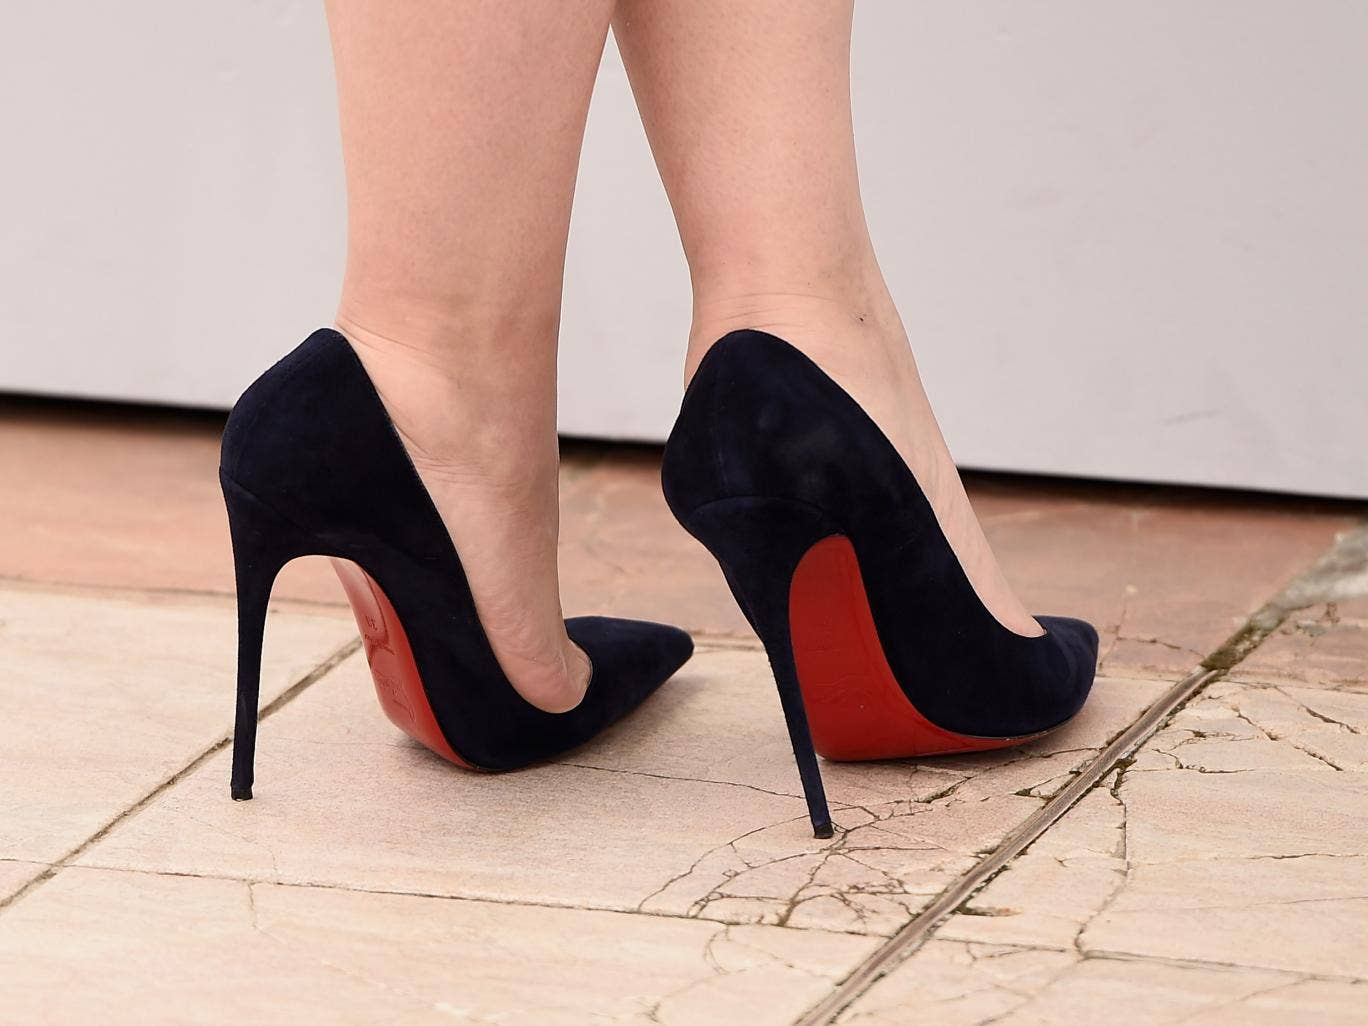 A student climbed to the highest mountain of the UK in 13 cm heels